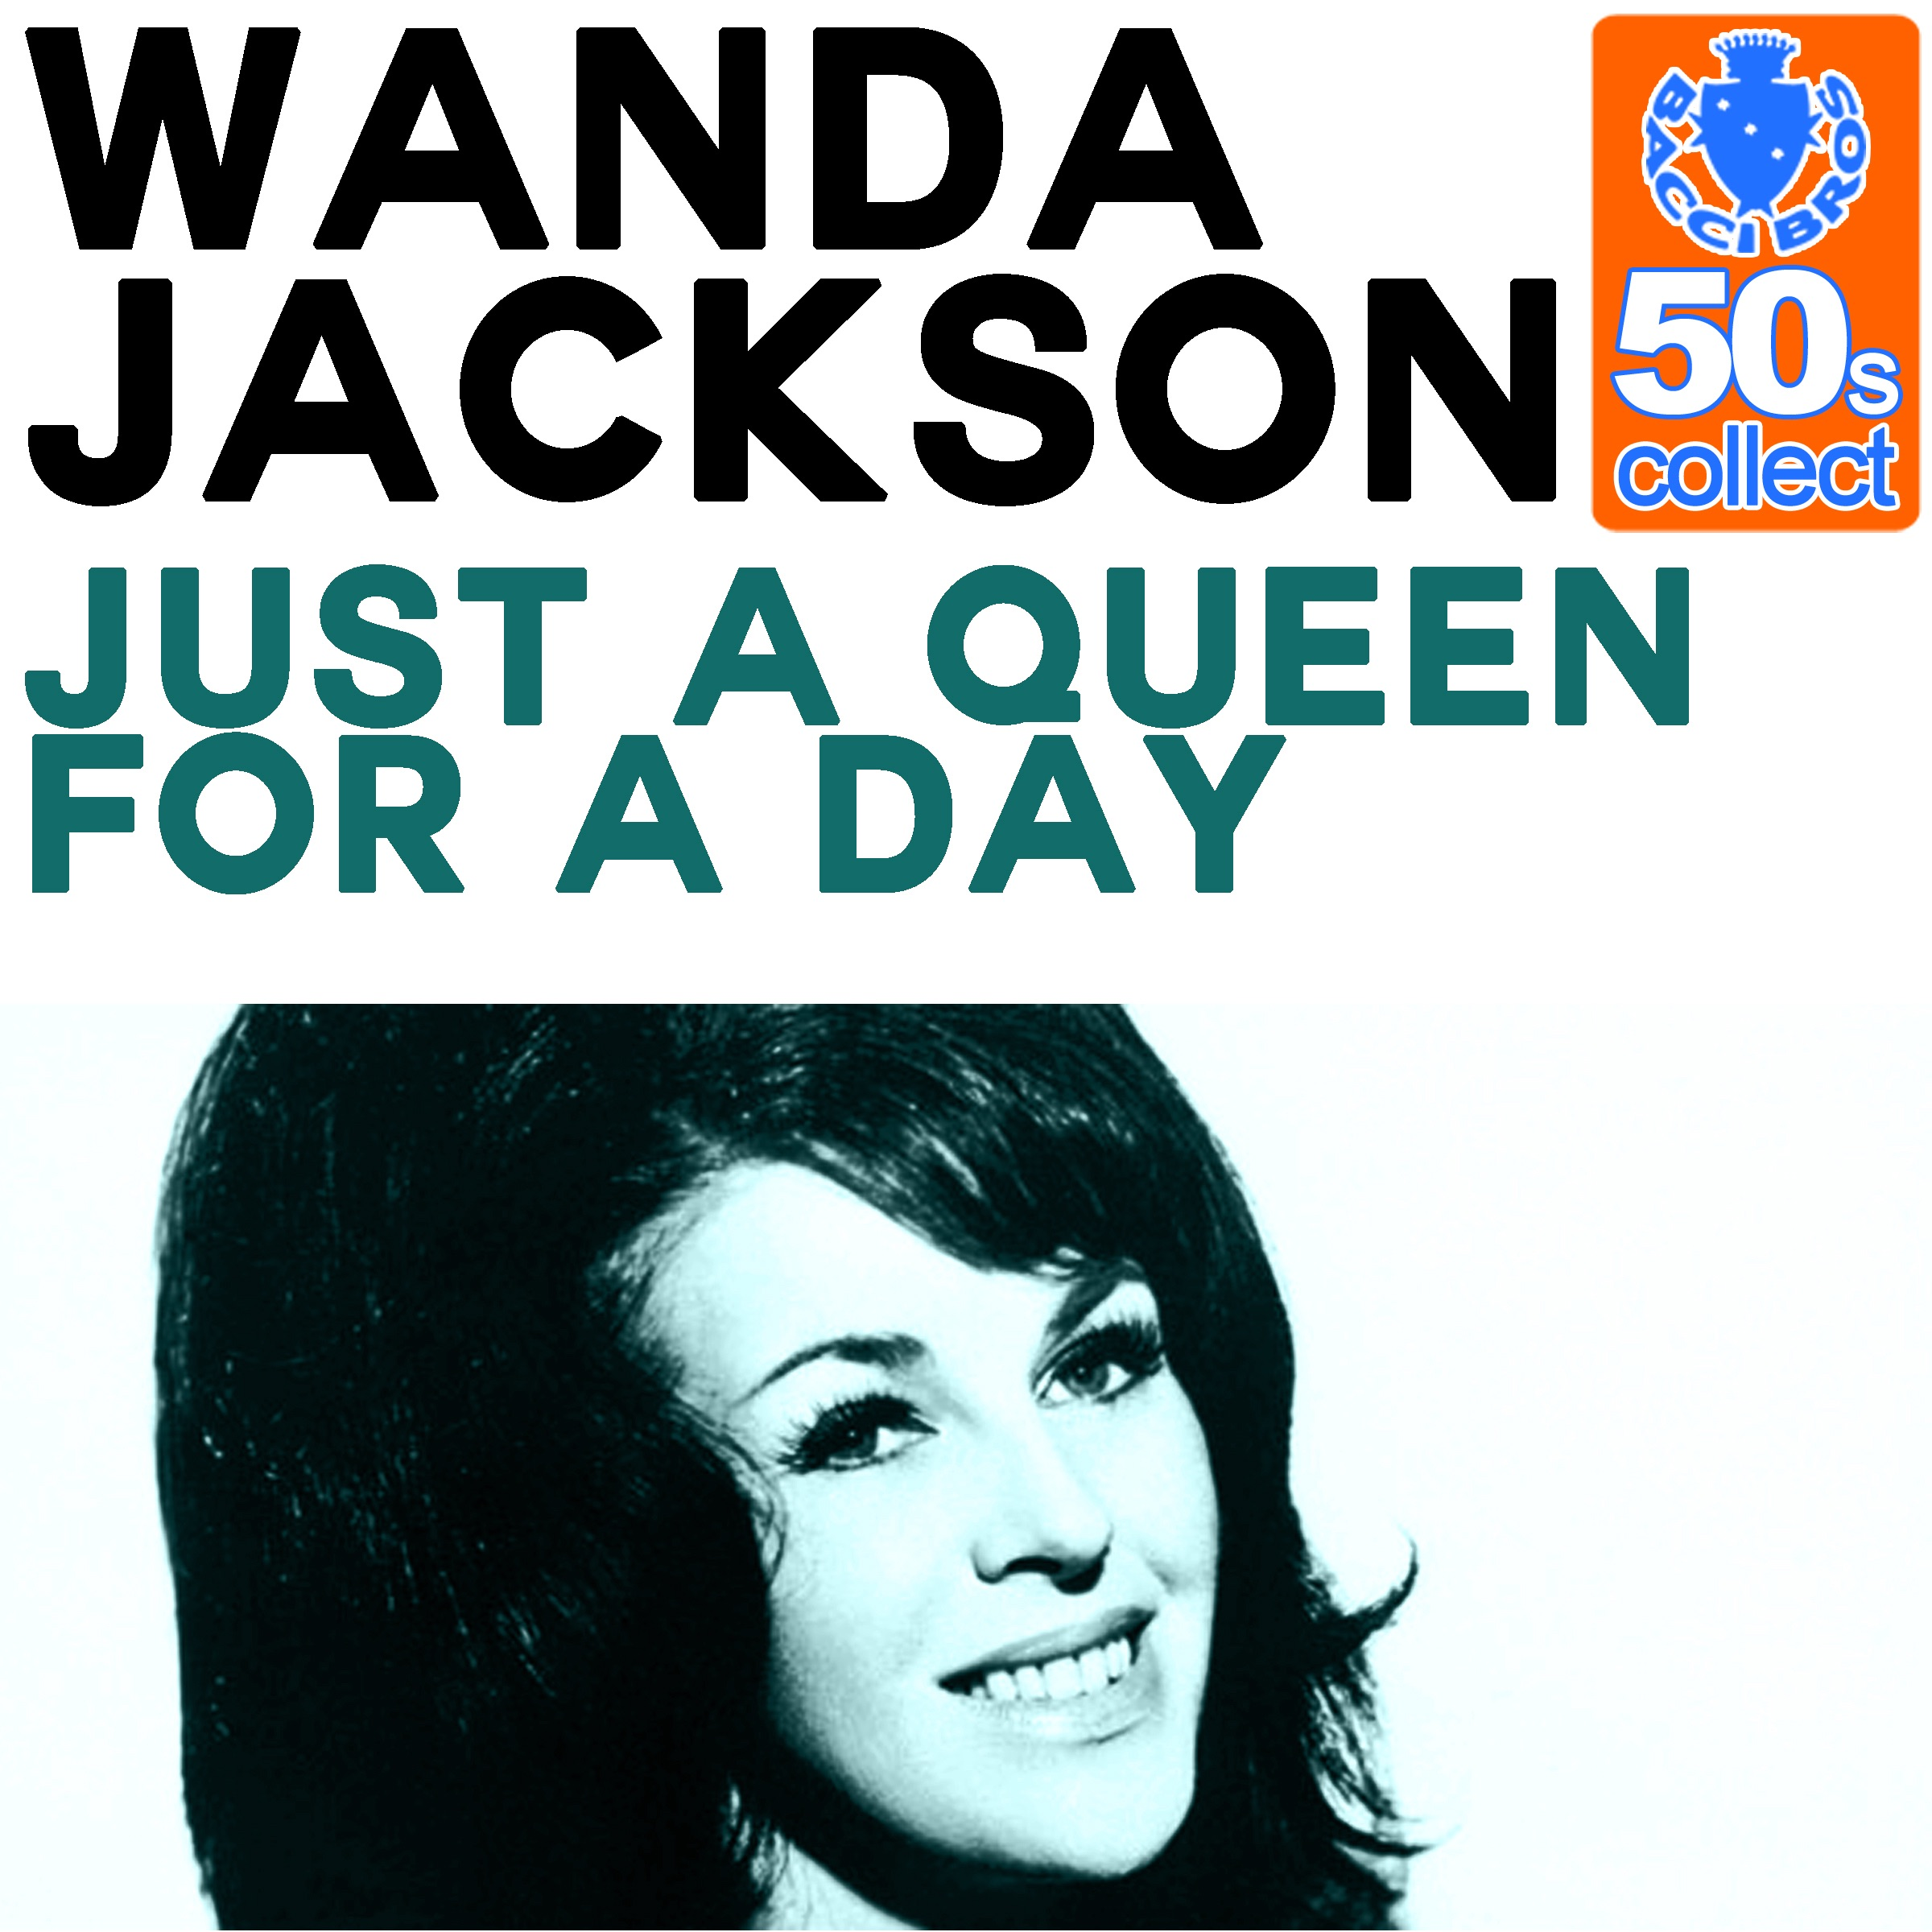 Just a Queen for a Day (Remastered) - Single